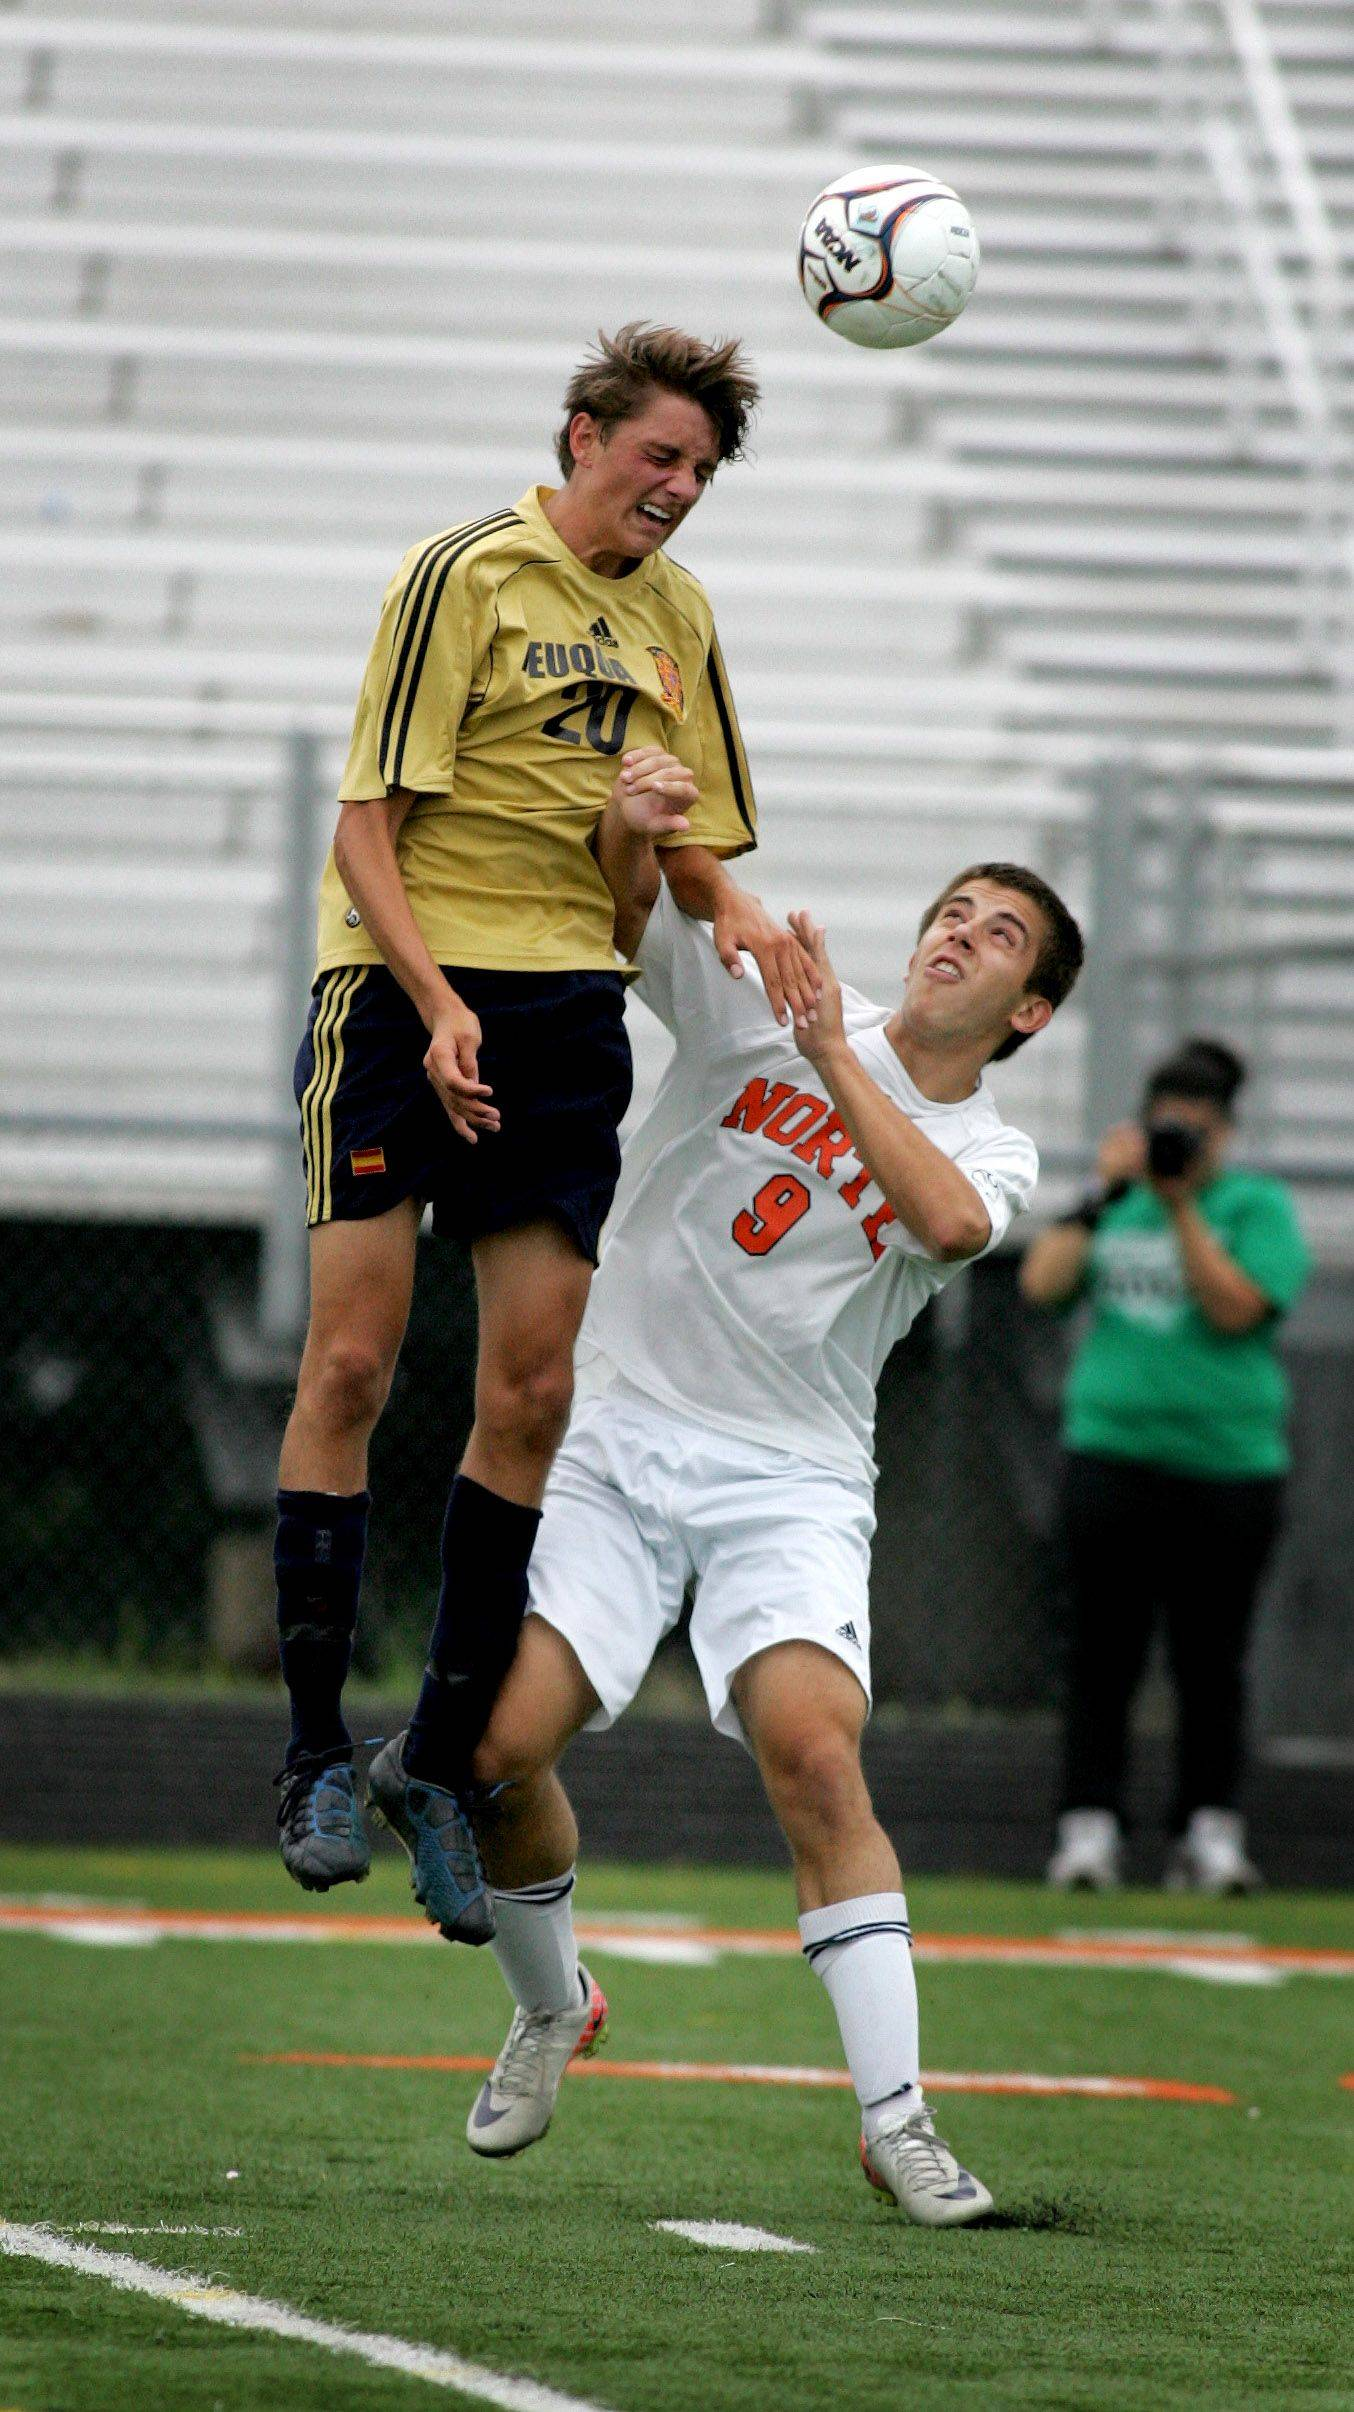 Stephan Kovacevic of Neuqua Valley, left, gets to the header over Nanad Komljenovic of Naperville North in boys soccer action Tuesday in Naperville.